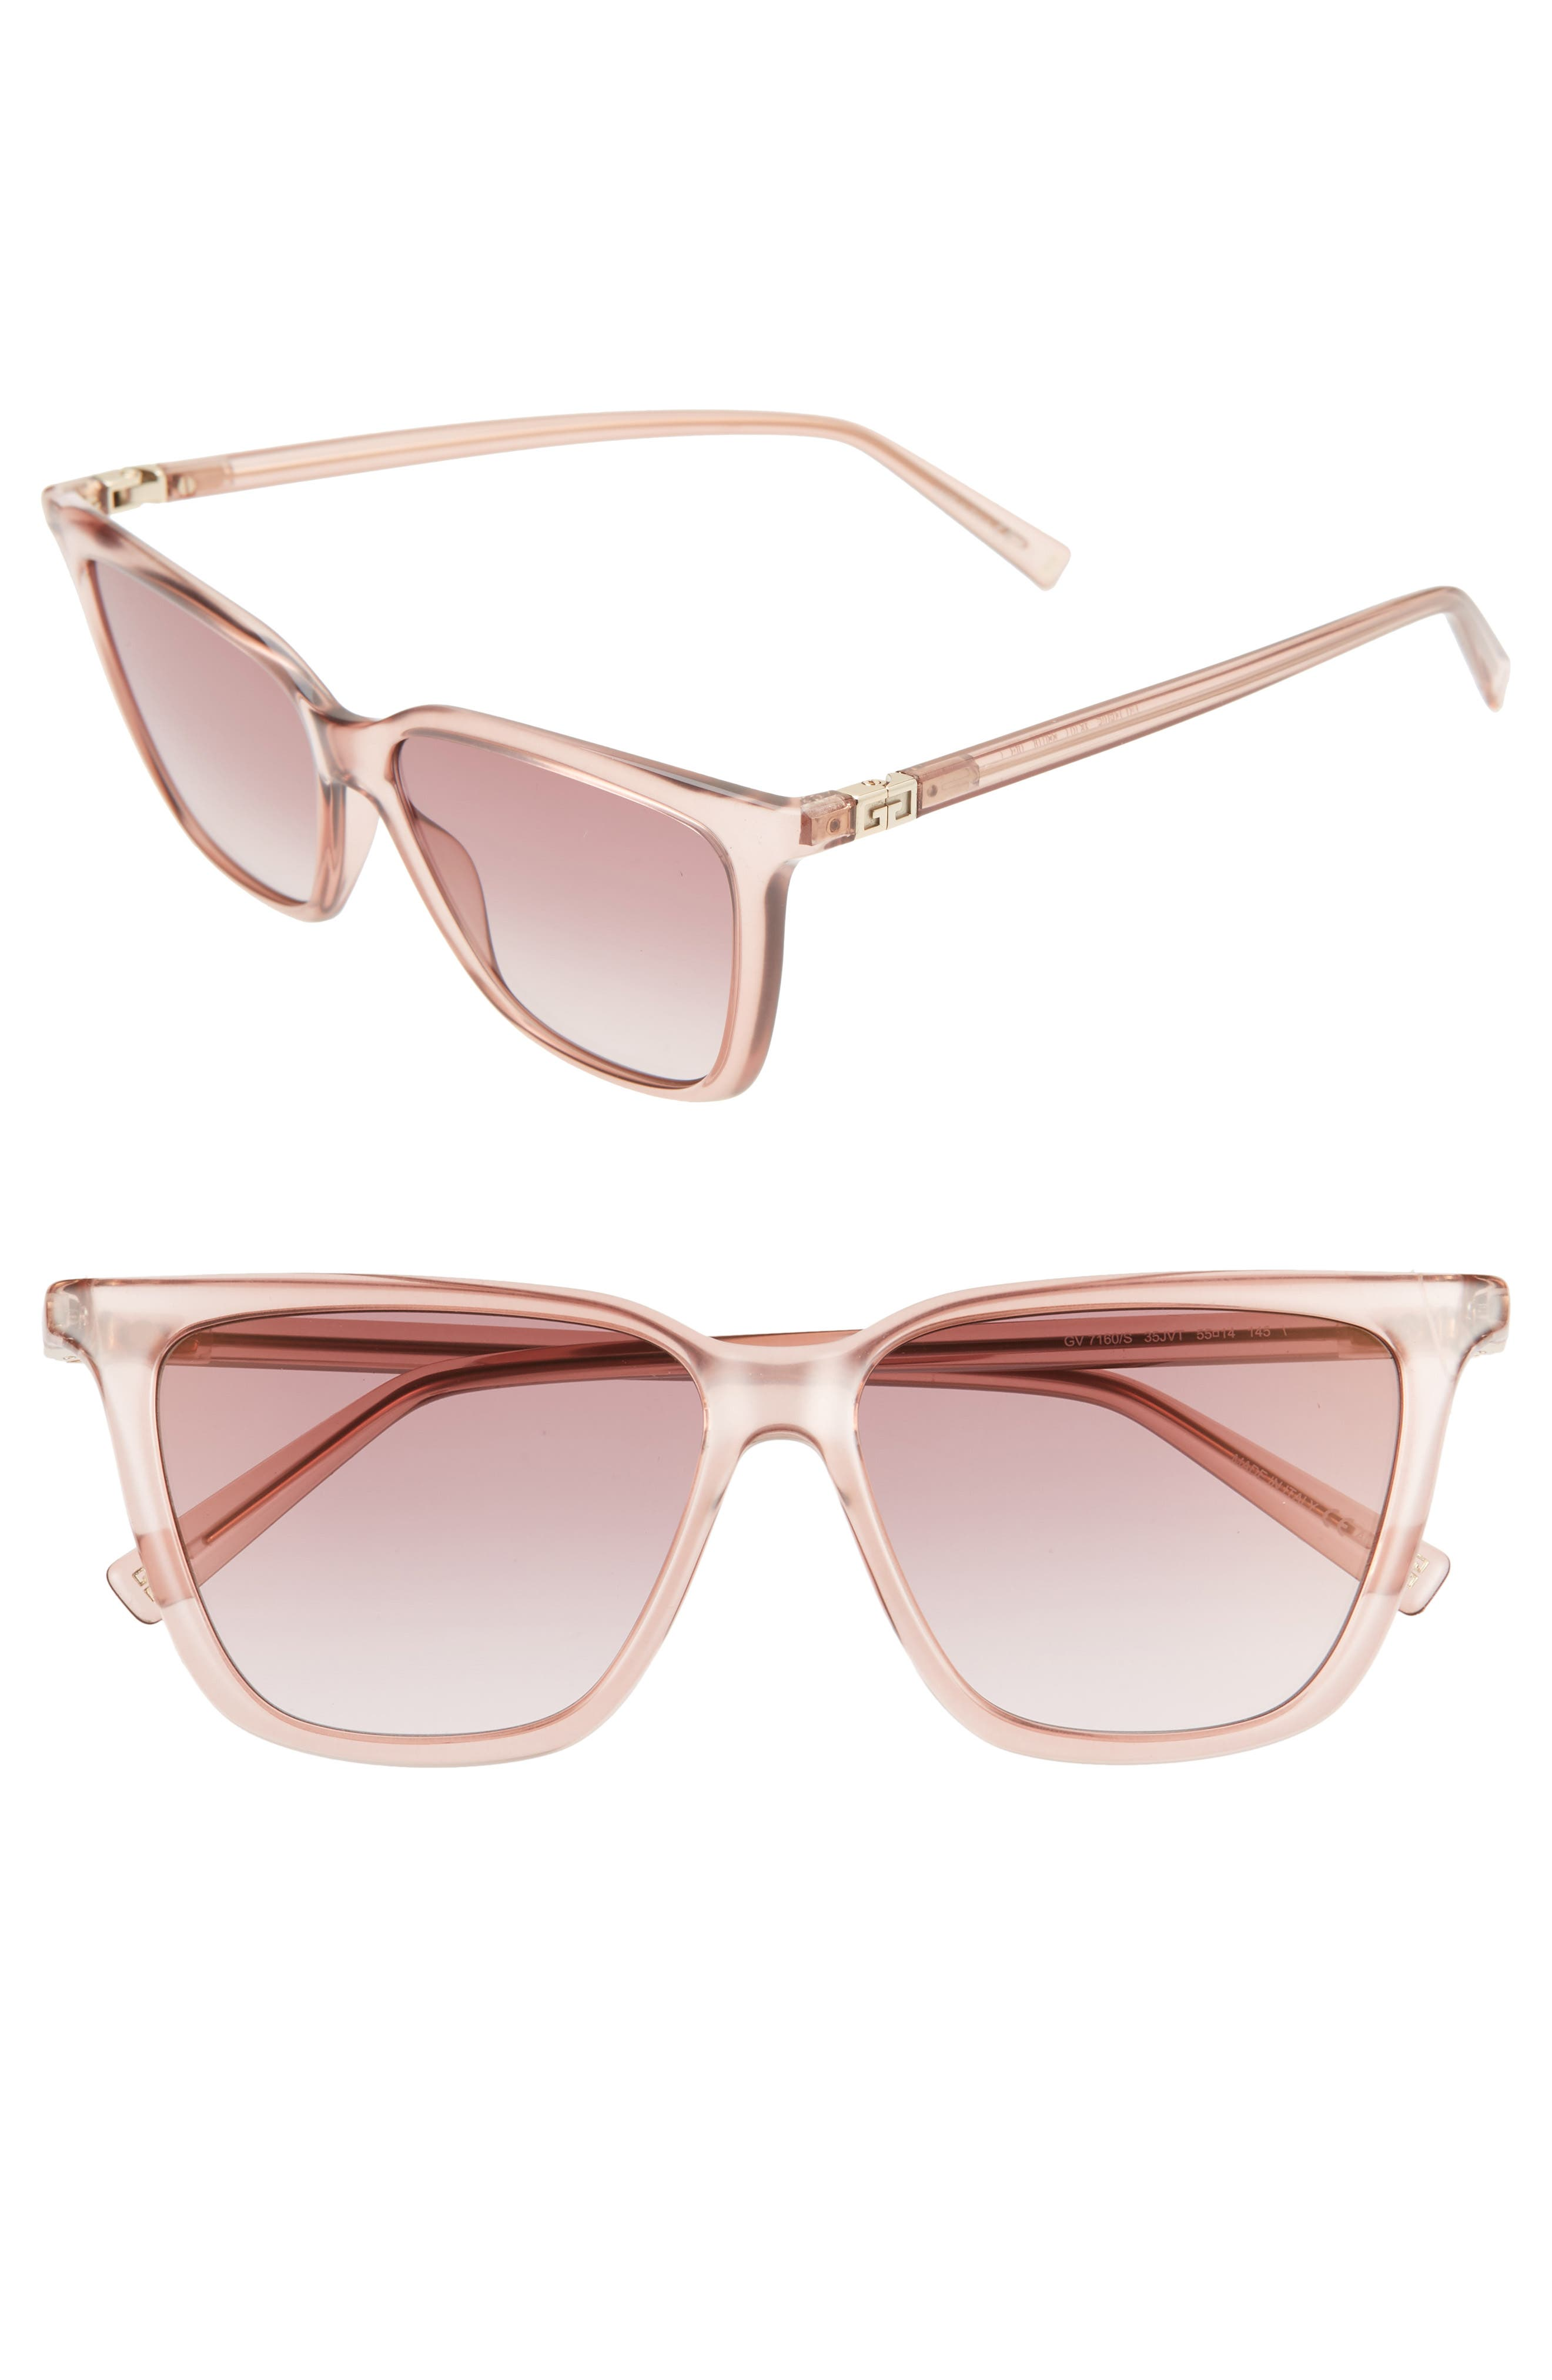 Image of Givenchy 55mm Square Sunglasses